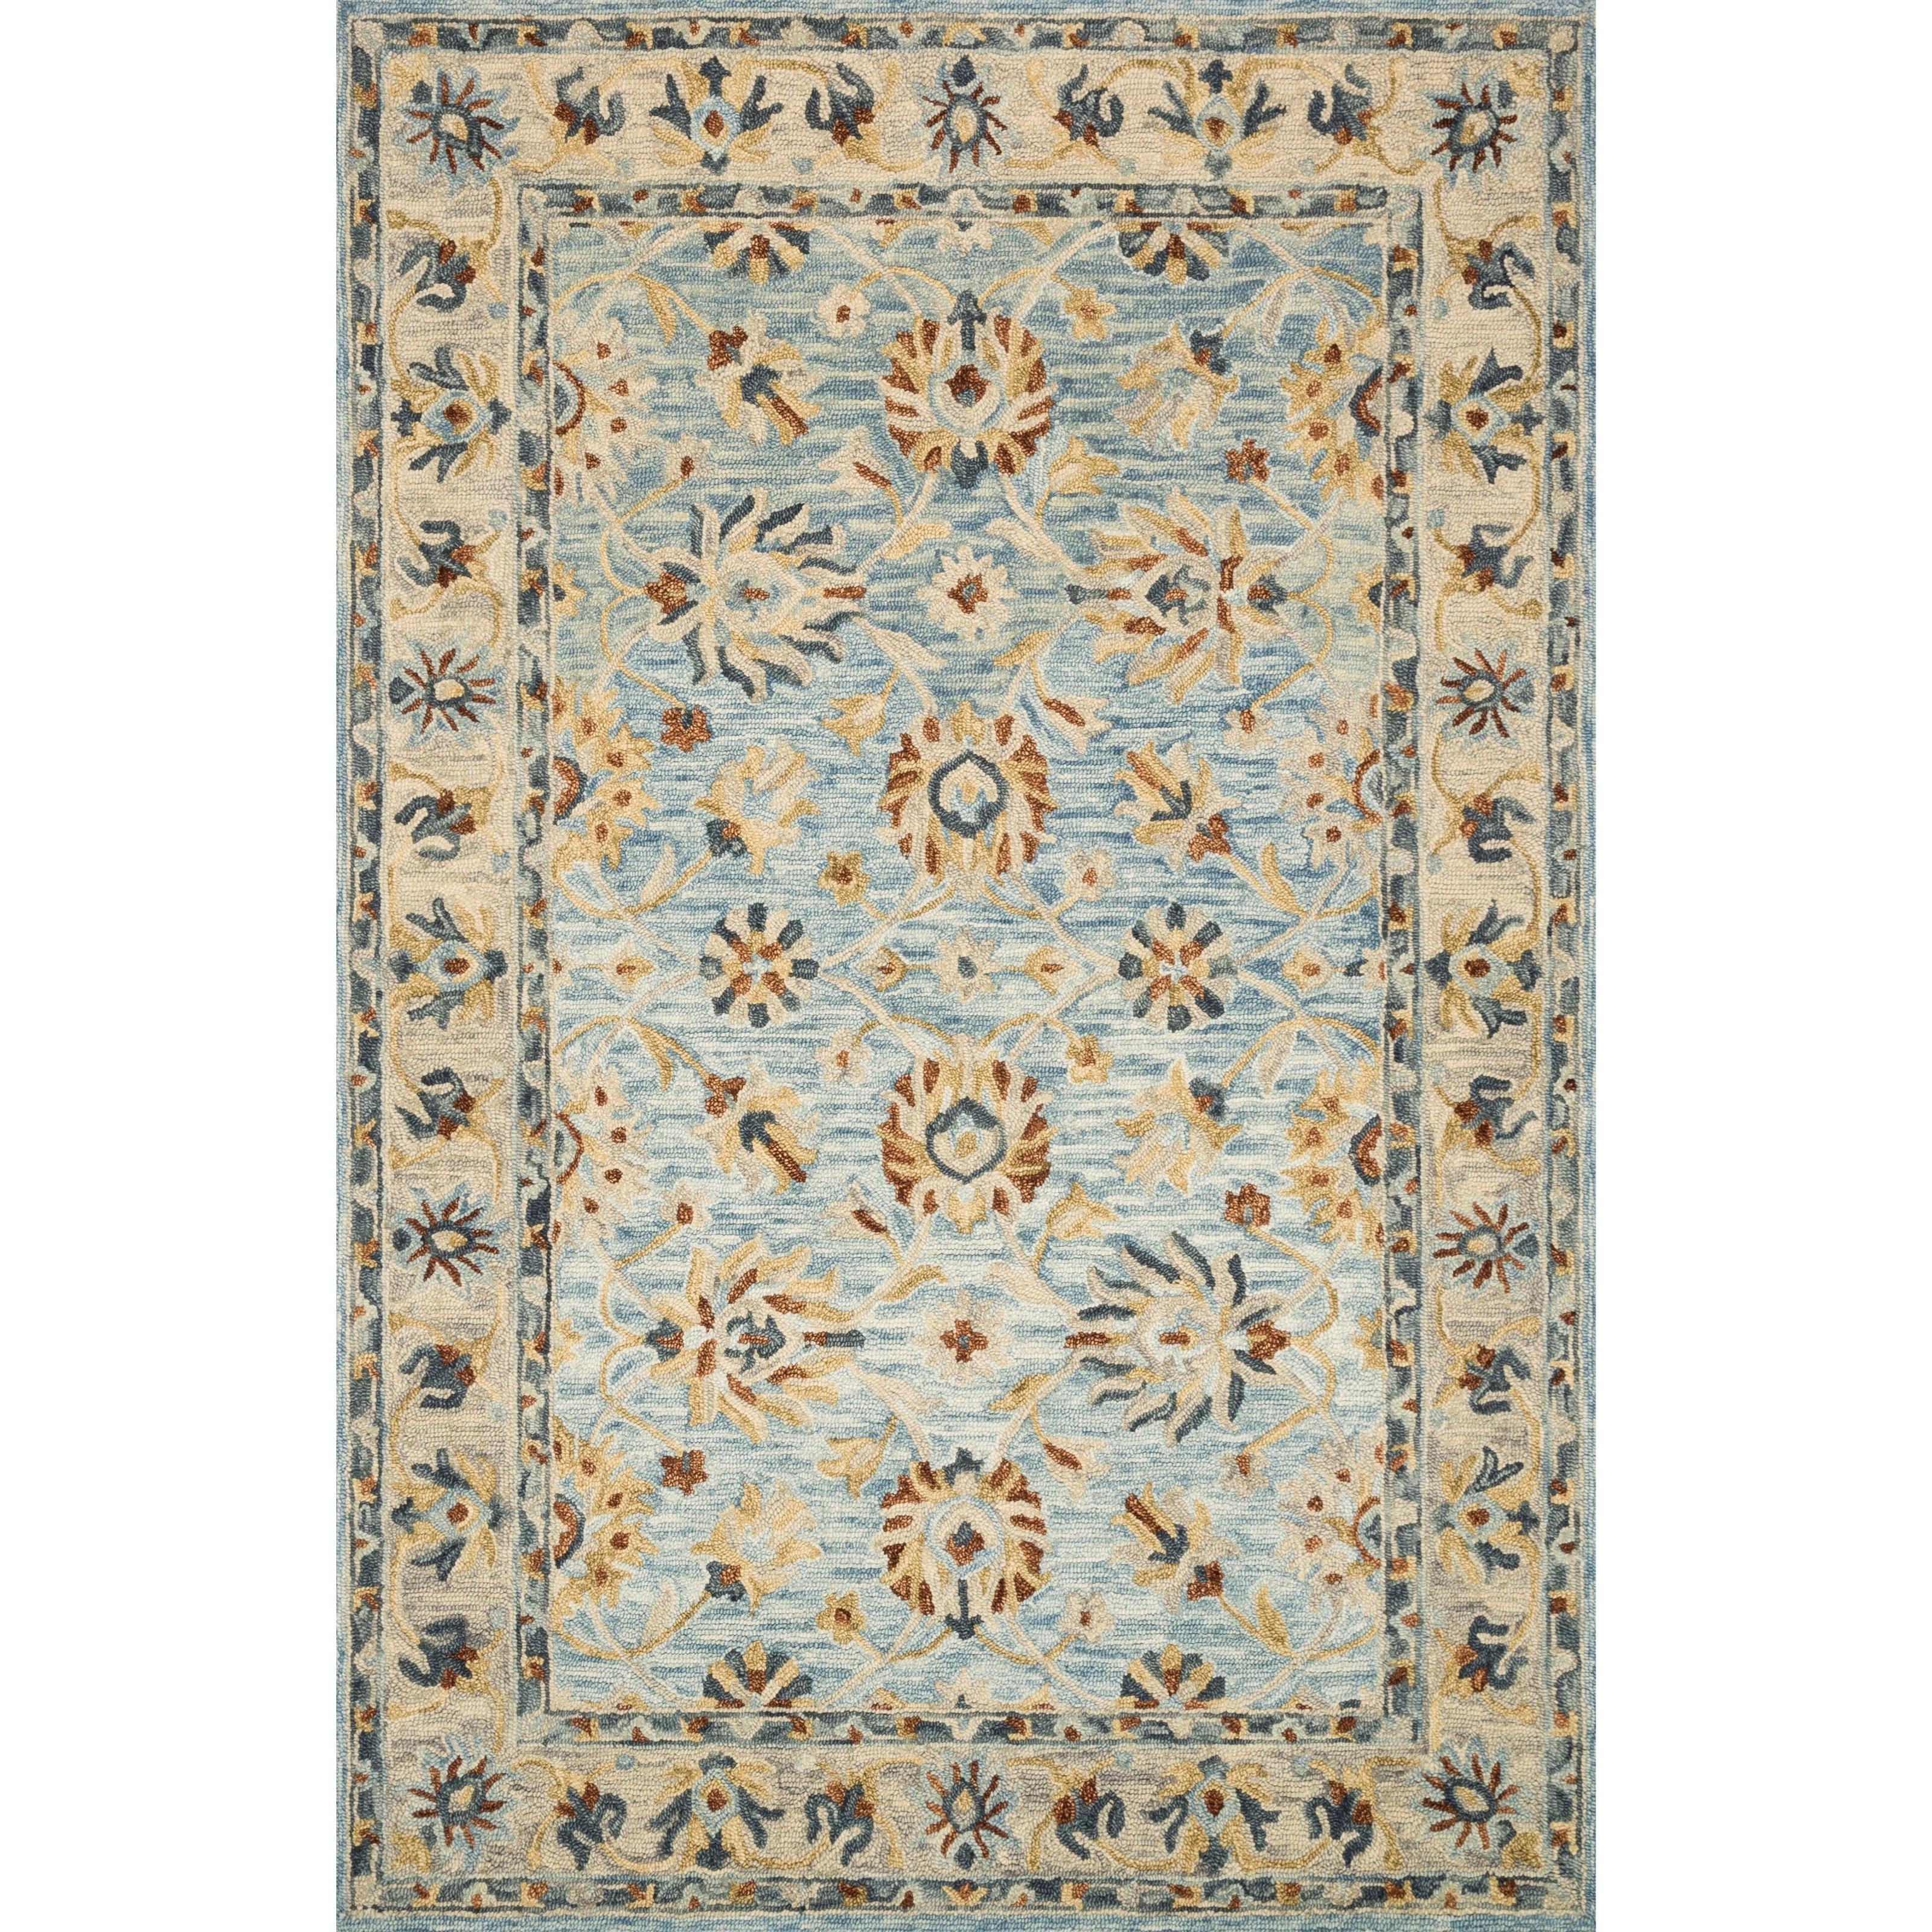 "Victoria 2'3"" x 3'9"" Lt. Blue / Natural Rug by Loloi Rugs at Pedigo Furniture"